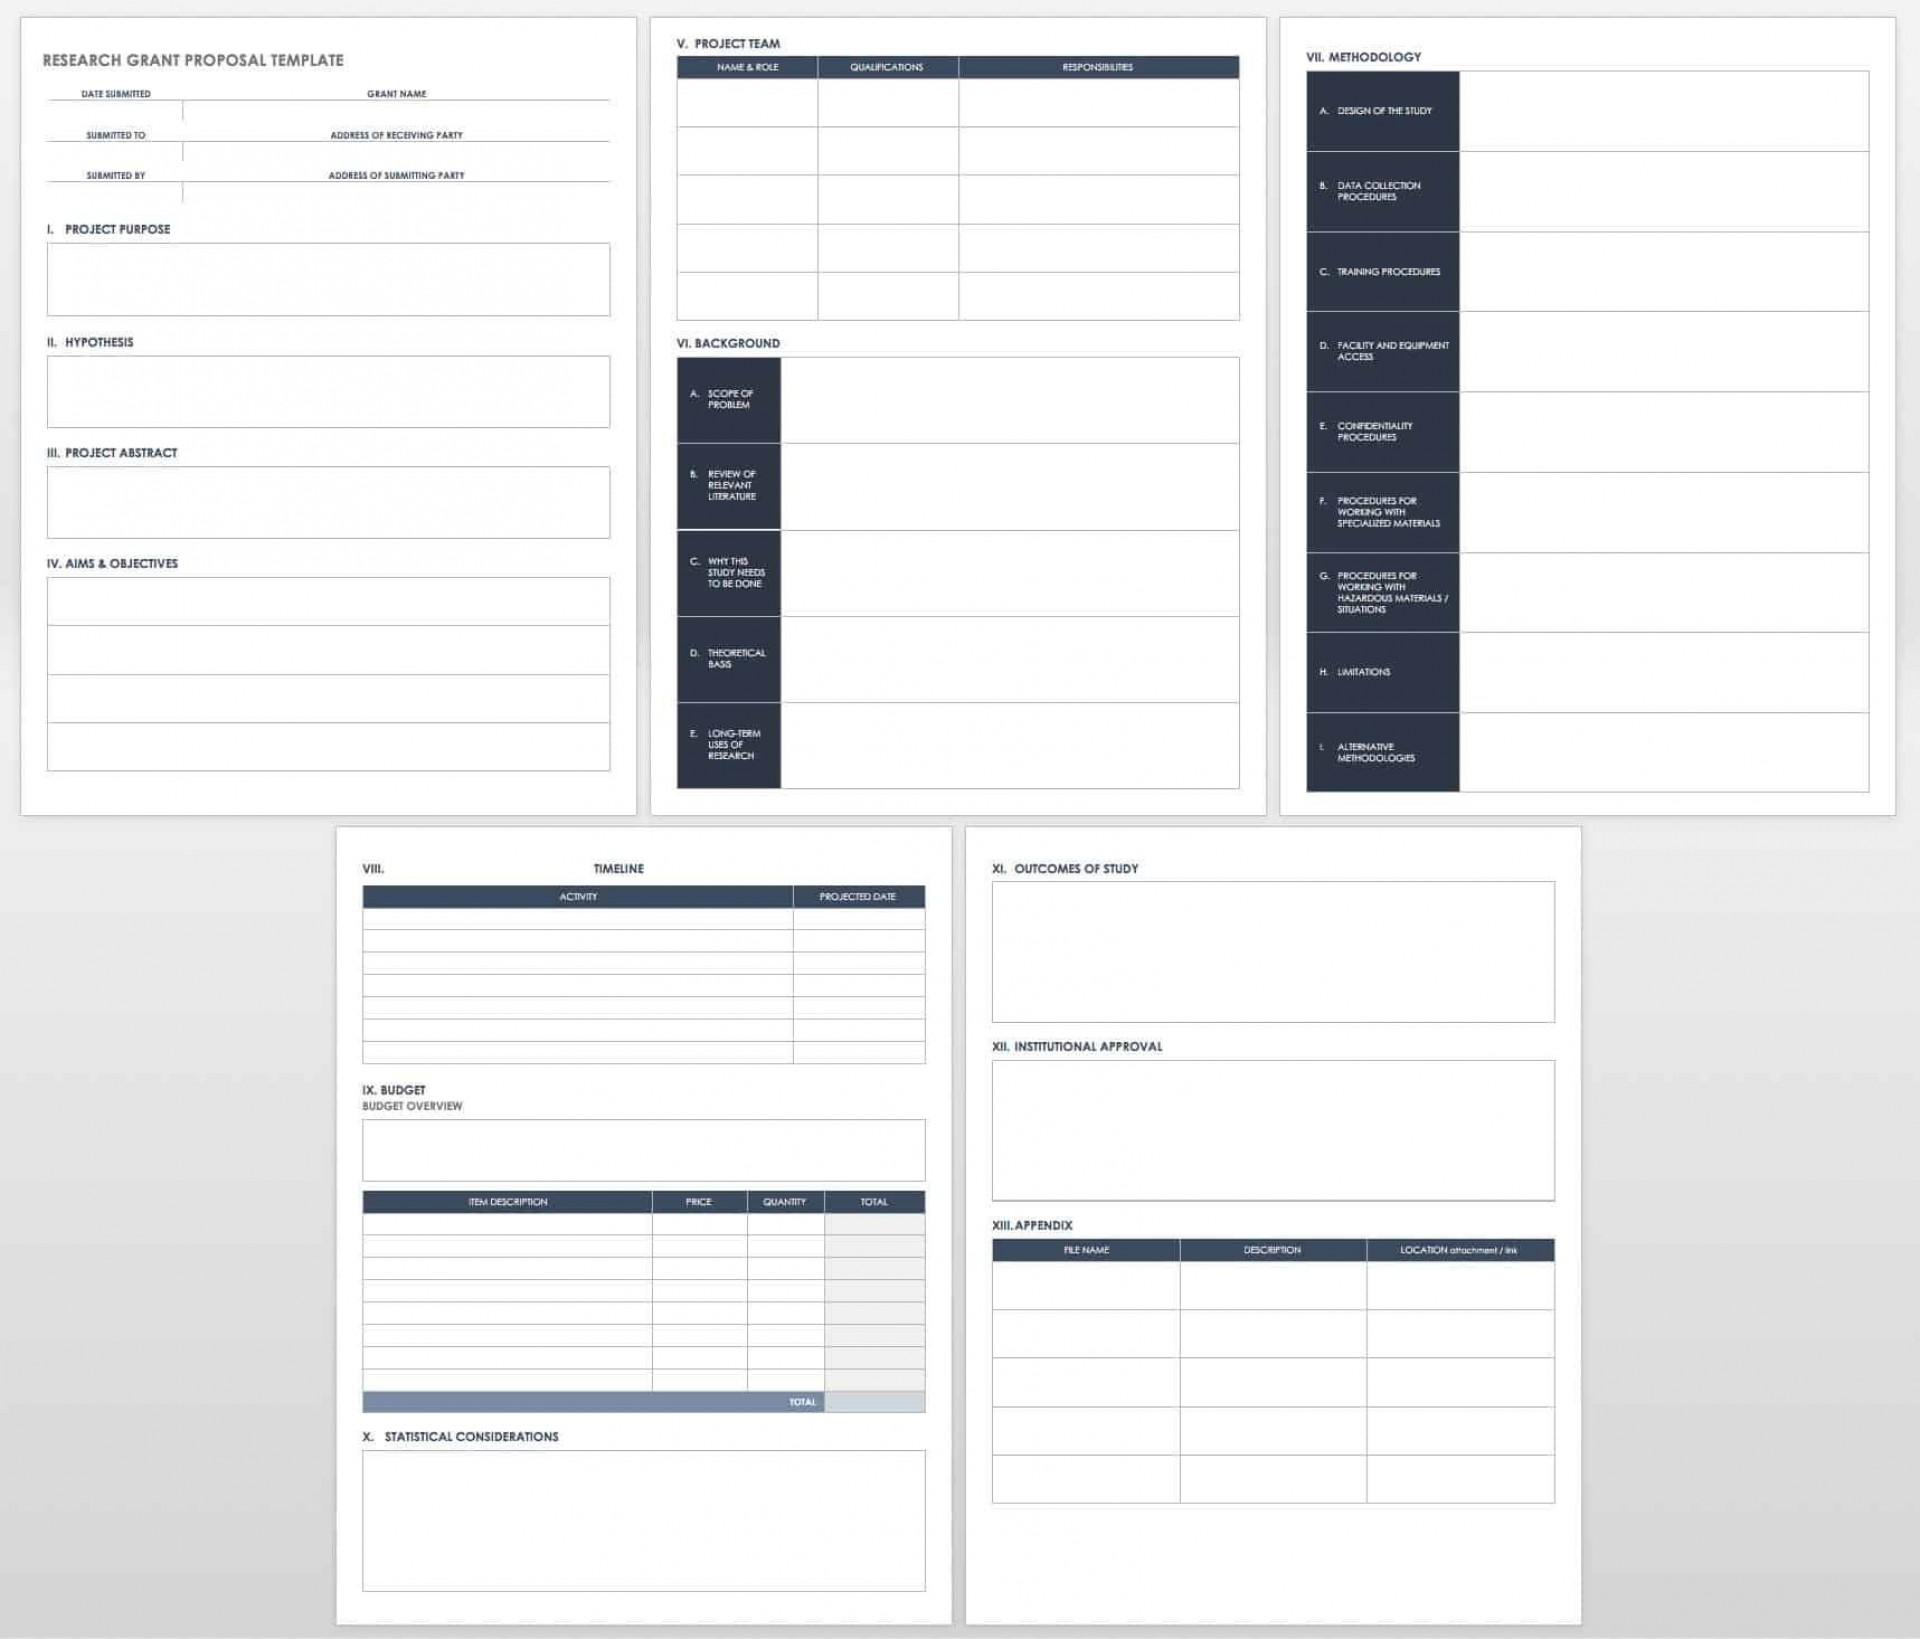 007 Unforgettable Request For Proposal Template Excel Image 1920